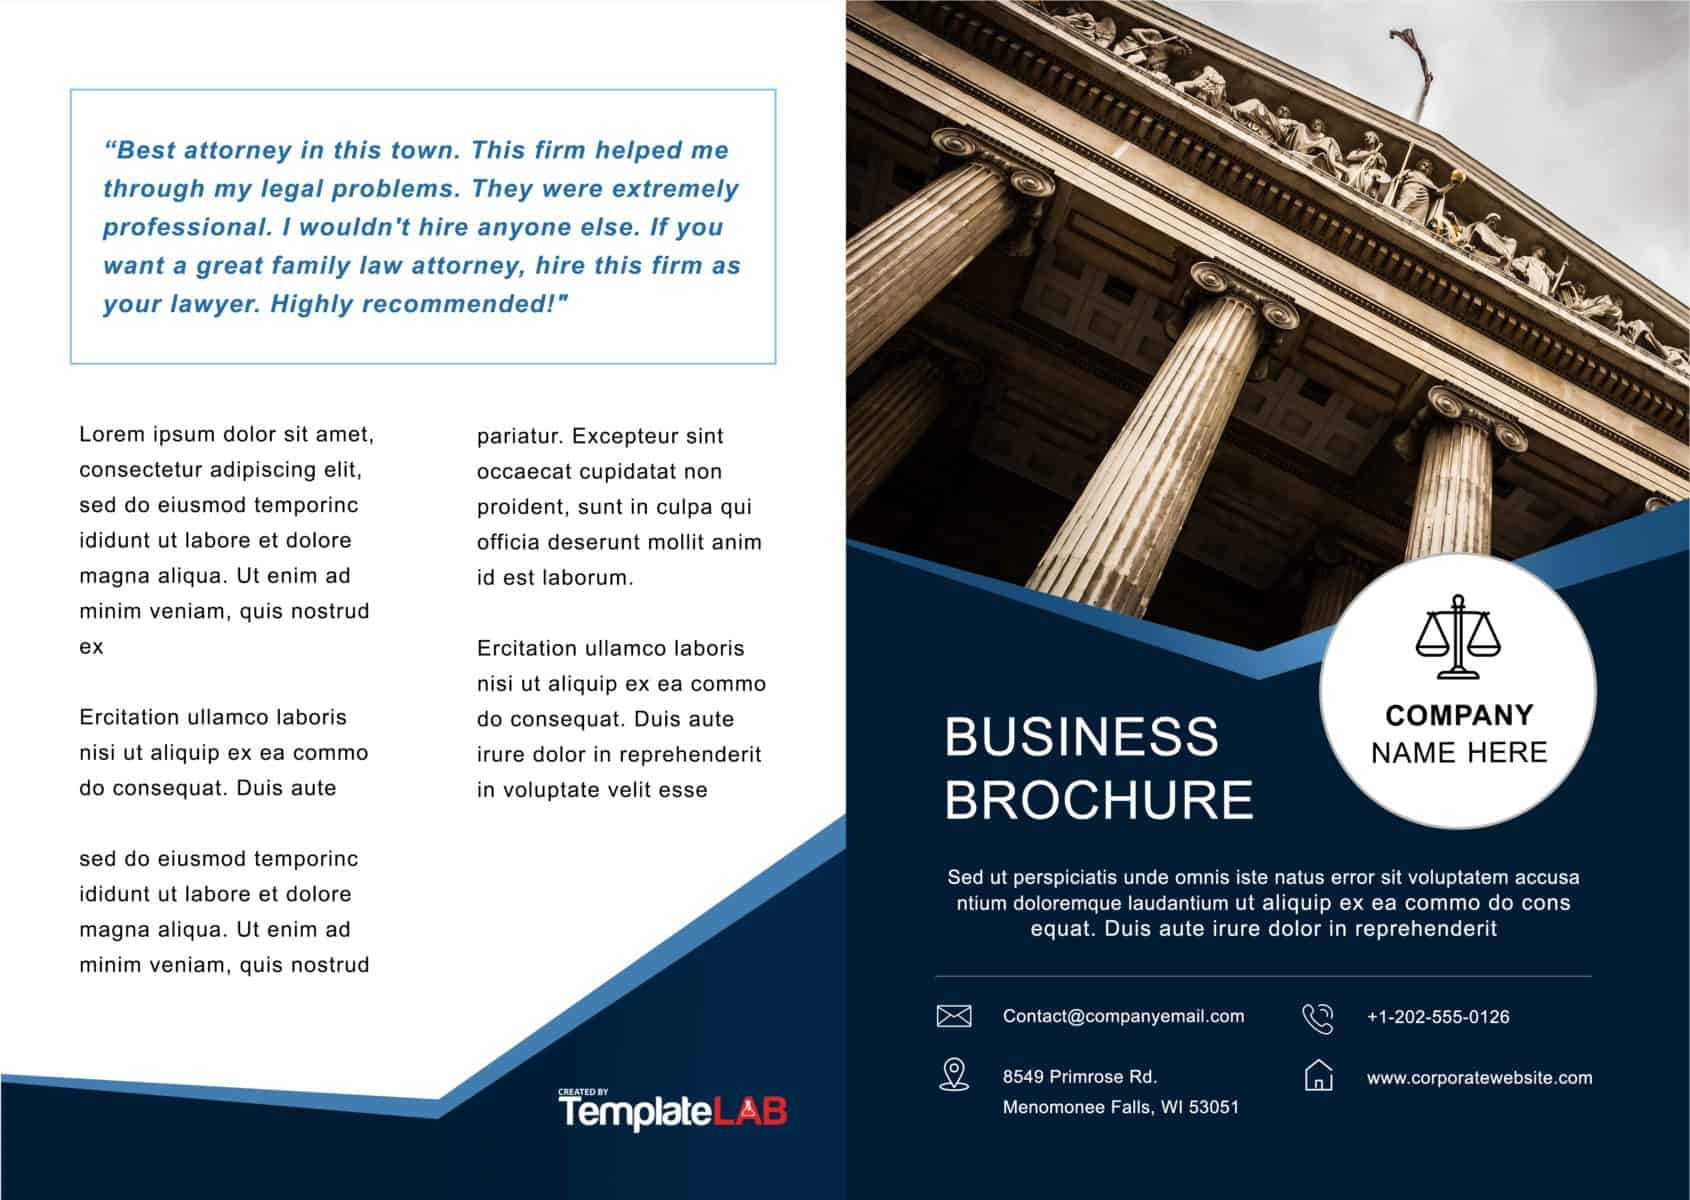 33 Free Brochure Templates (Word + Pdf) ᐅ Templatelab Throughout One Page Brochure Template